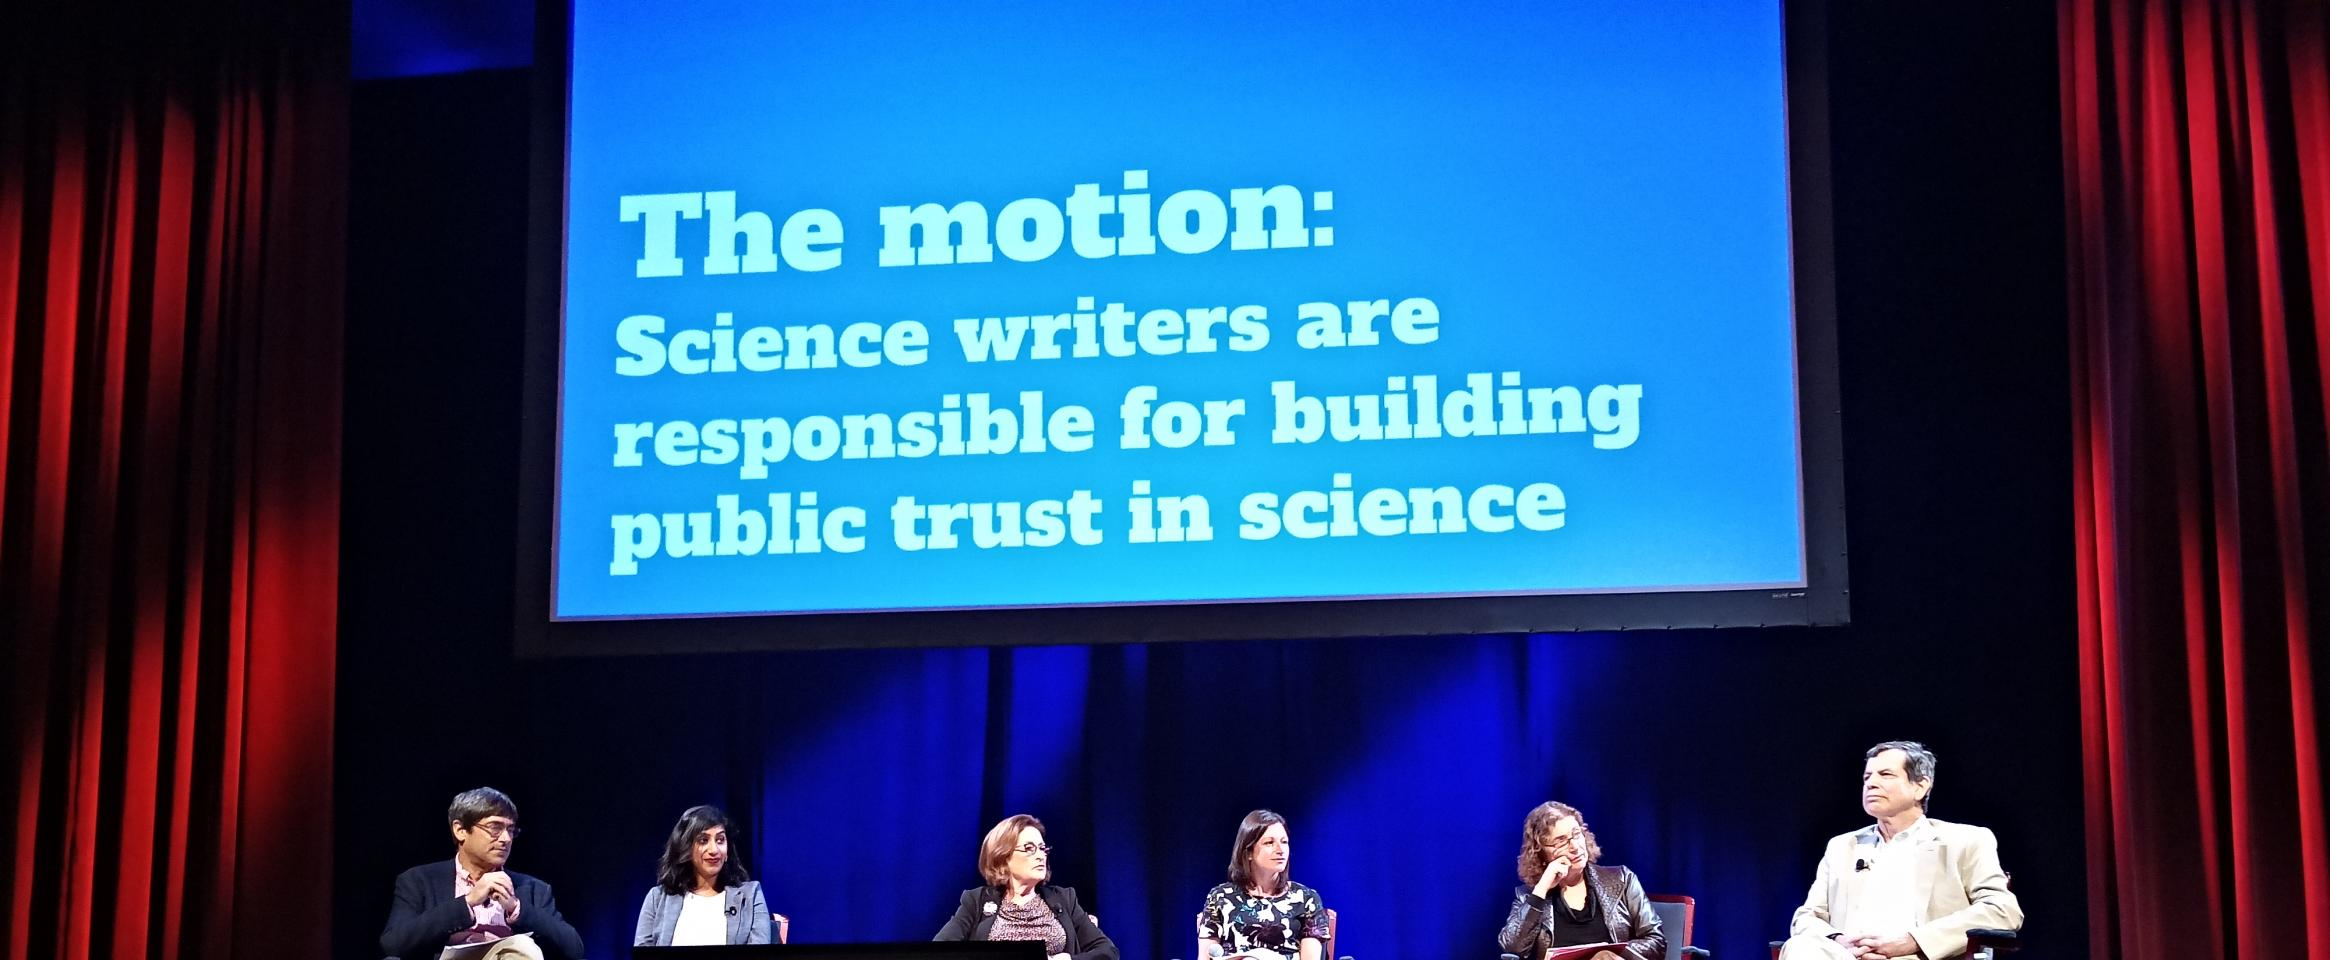 ScienceWriters 2018 panel: In the Trump era, whose job is it to build public trust in science?